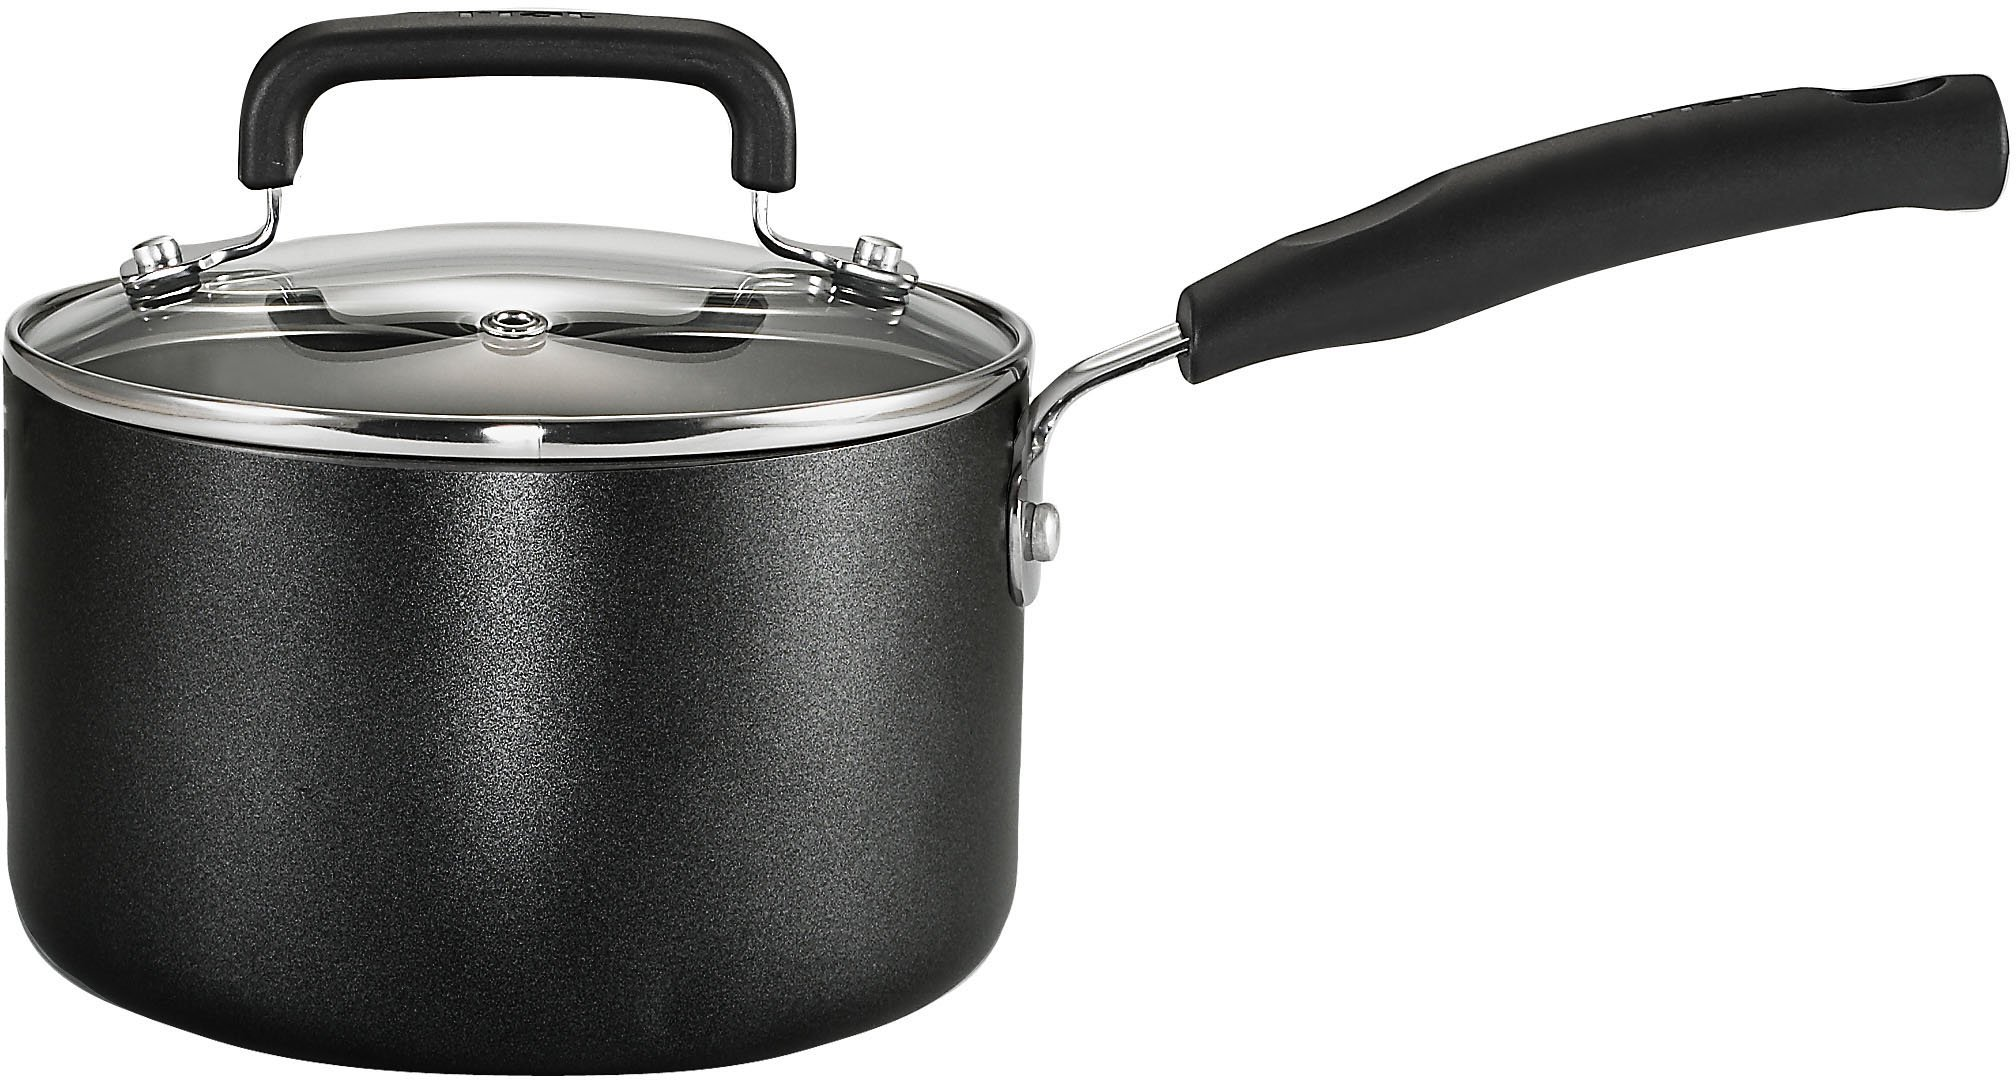 T-fal C11924 Signature Nonstick Expert Easy Clean Interior Dishwasher Safe PFOA Free Oven Safe 3-Quart Sauce Pan with Glass Lid Cookware, Black by T-fal